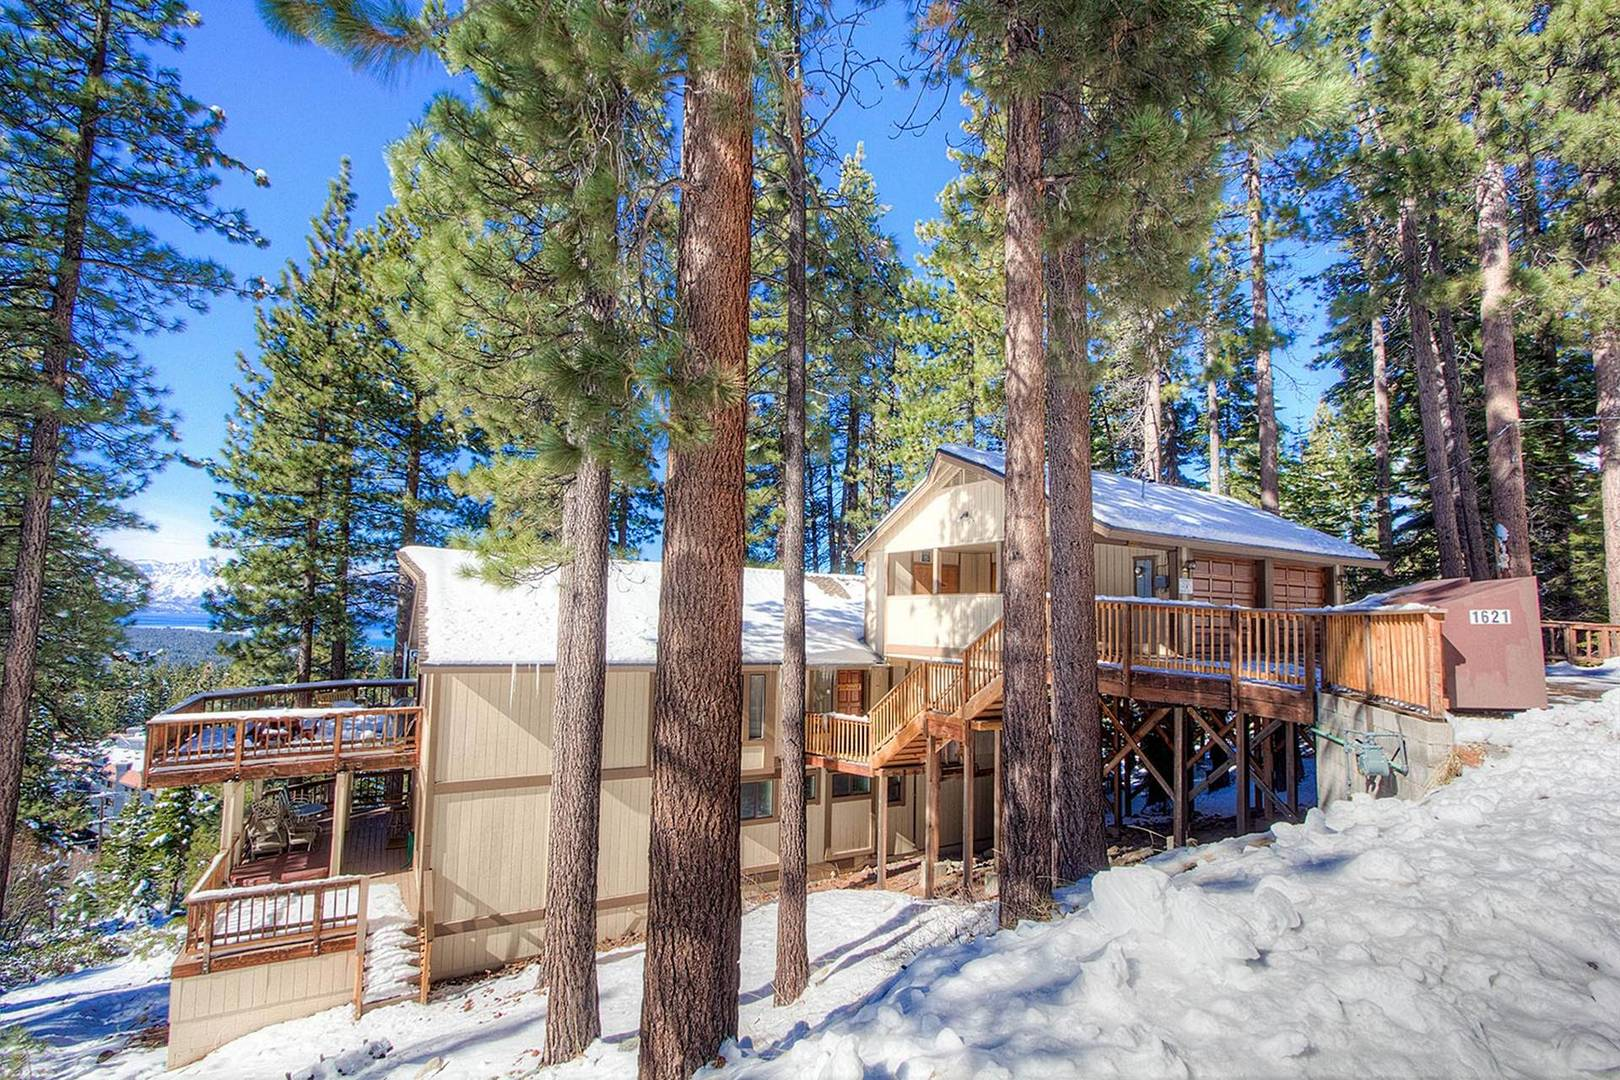 hch1221 lake tahoe vacation rental